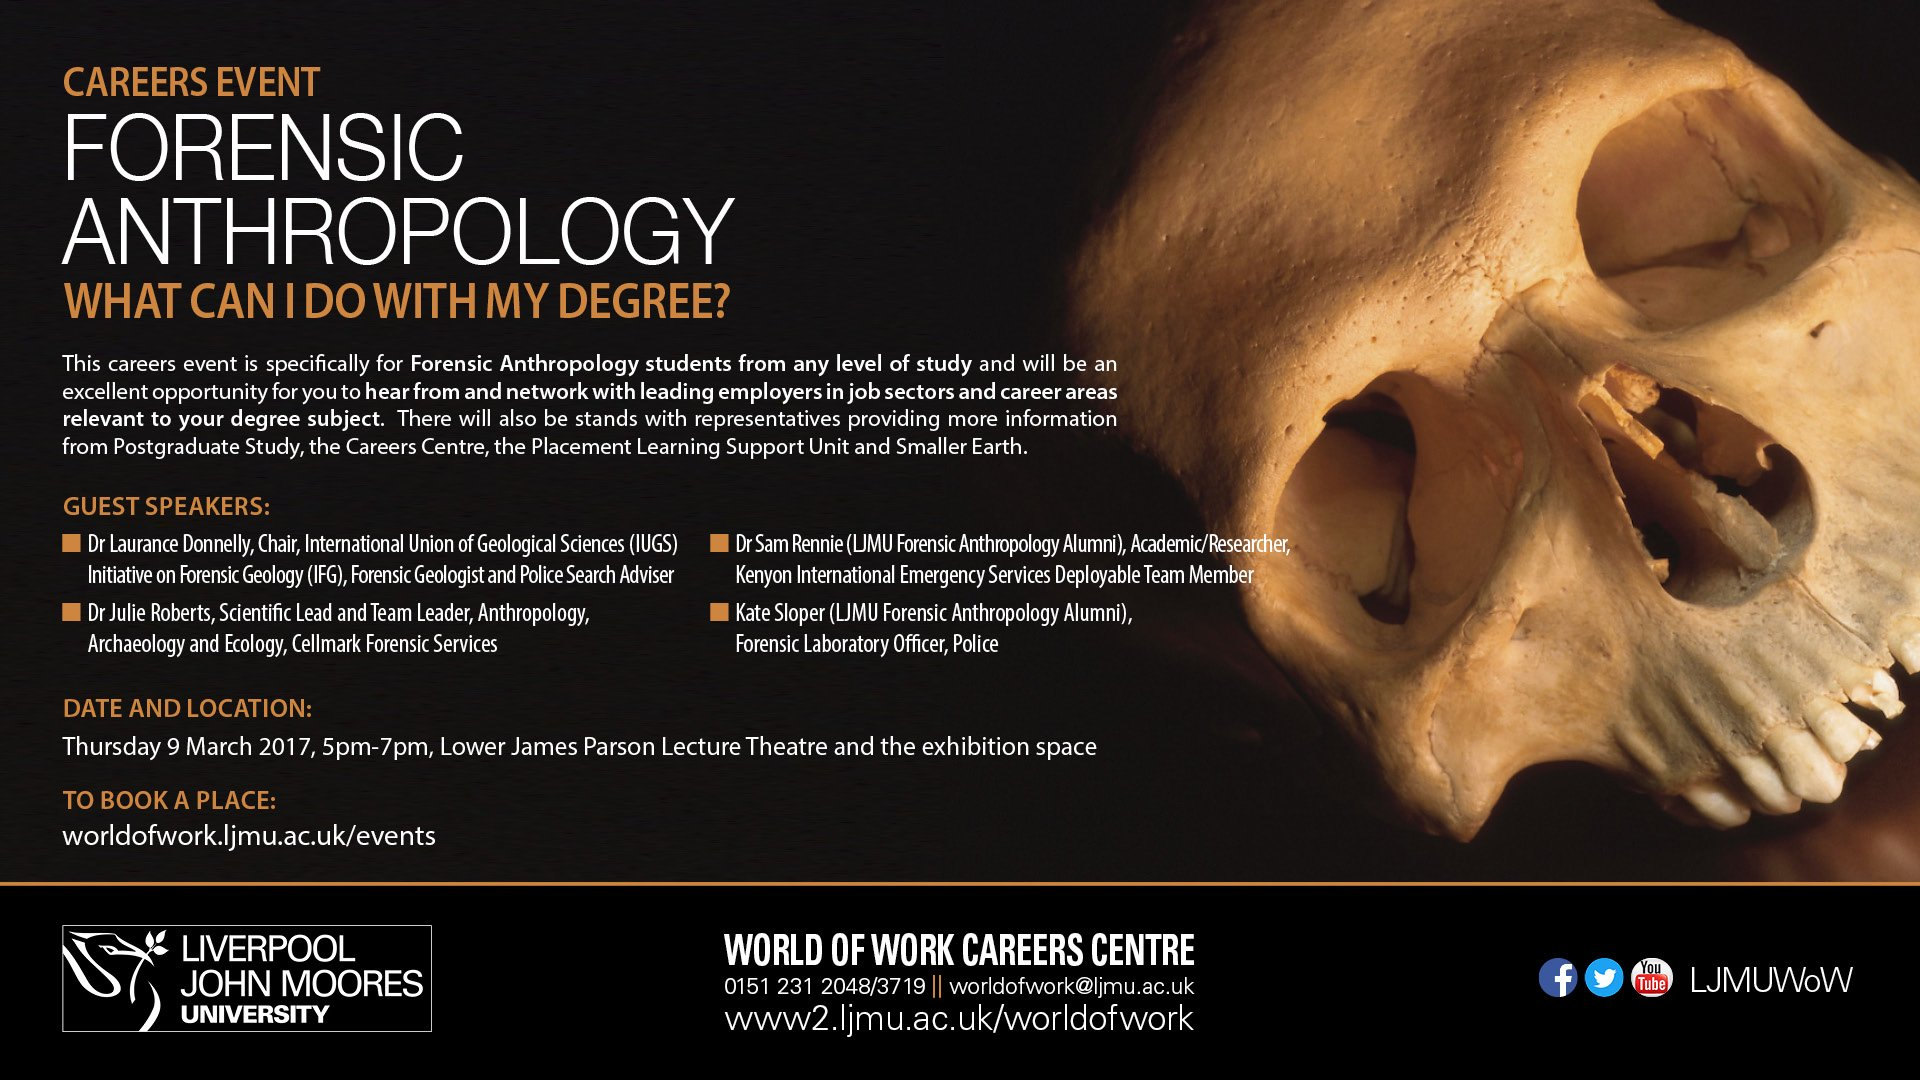 Ljmu Careers Team On Twitter Forensic Anthropology What Can I Do With My Degree Thu 9 Mar 5 7 James Parsons Building Https T Co 1yhgxhp5an Https T Co Omg2pnmnie